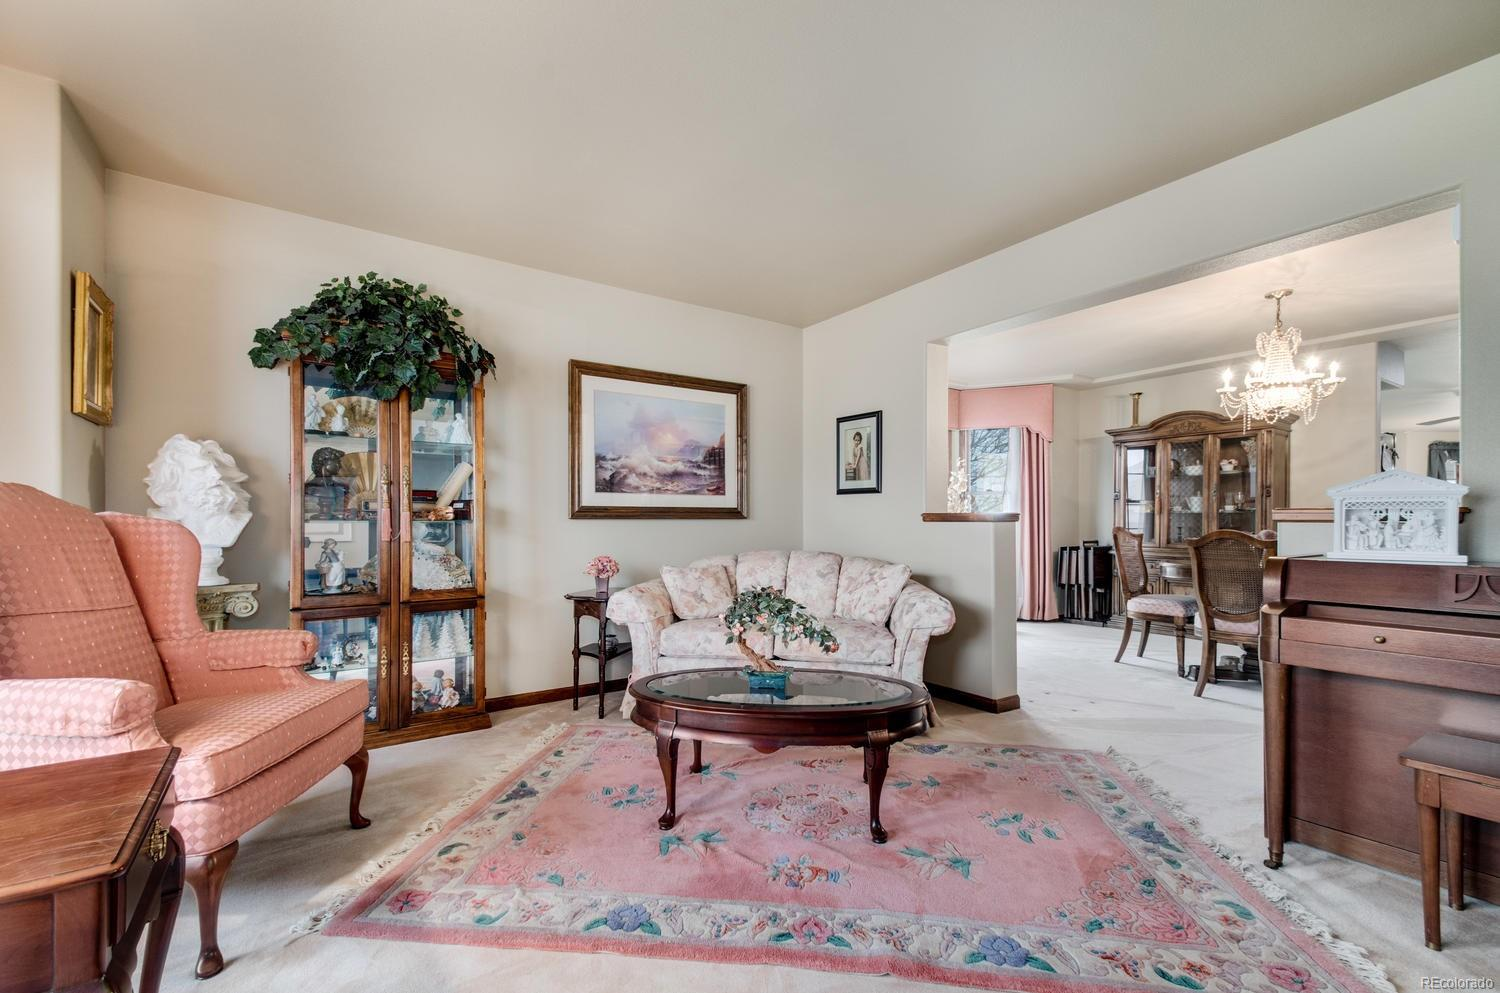 Flow between the formal living and dining rooms easily thanks to the open concept!